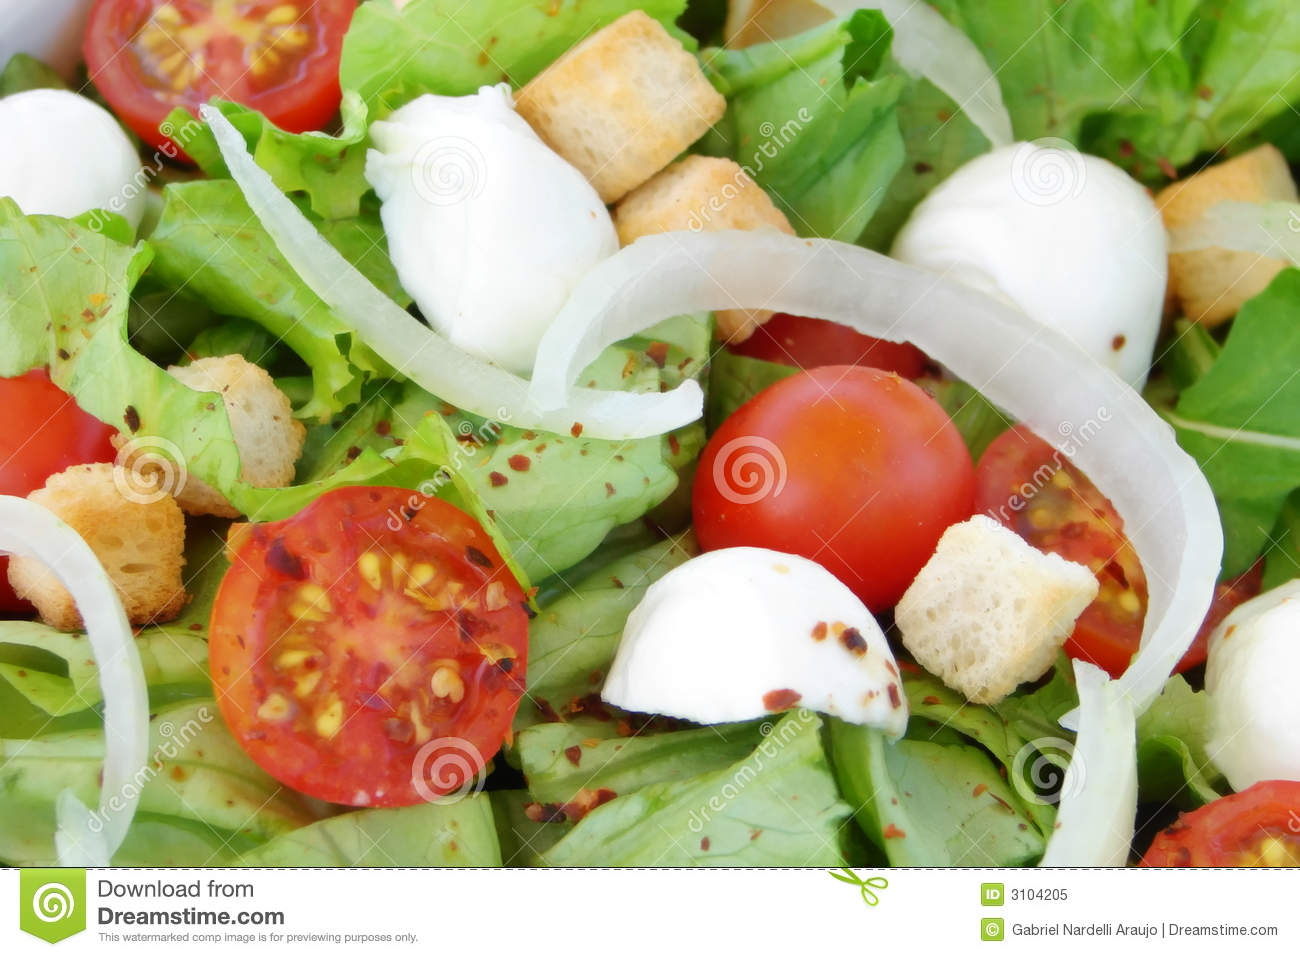 Fresh salad close-up